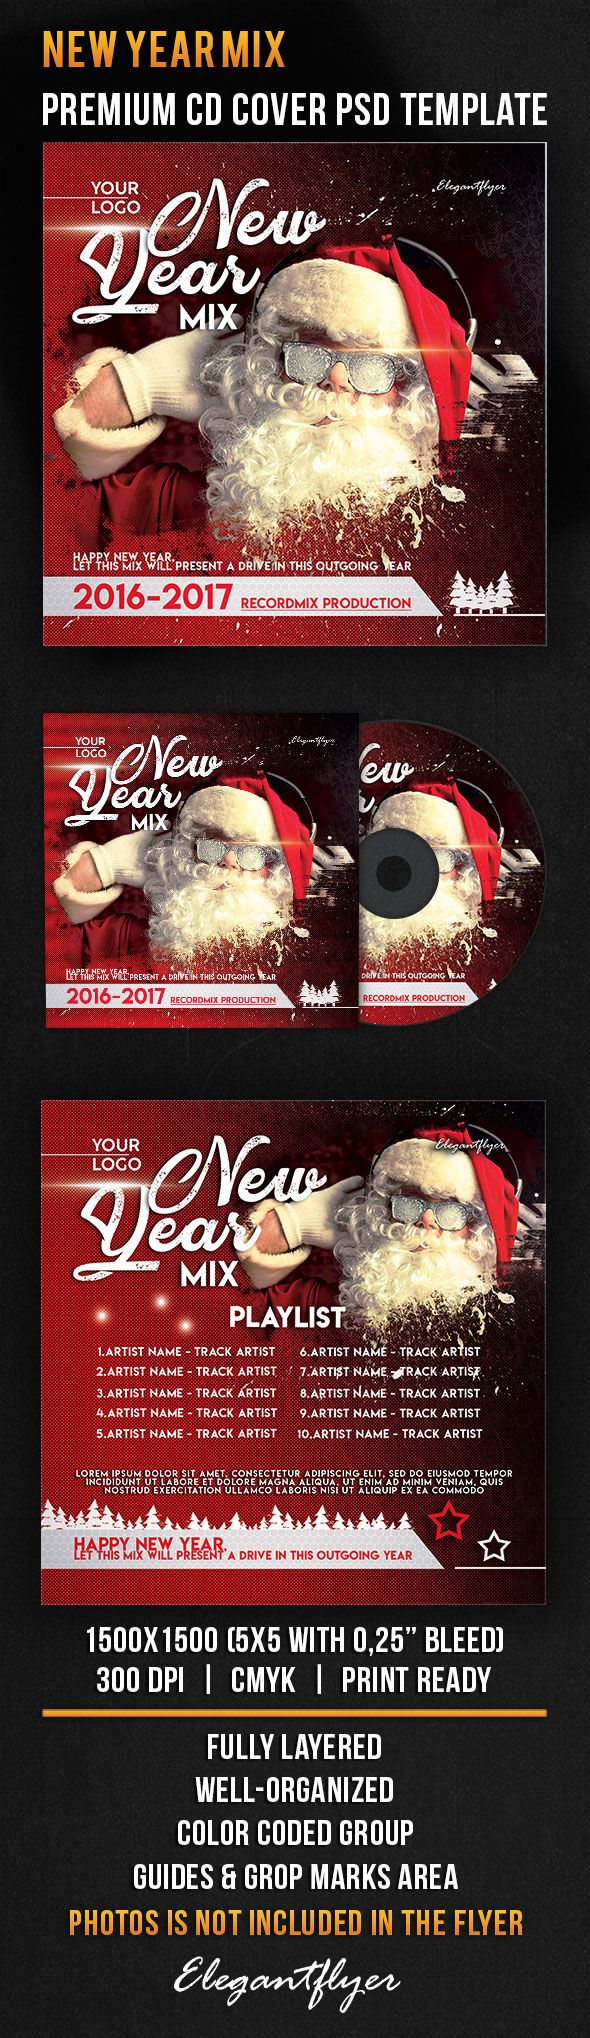 New Year Mix – Premium CD Cover PSD Template